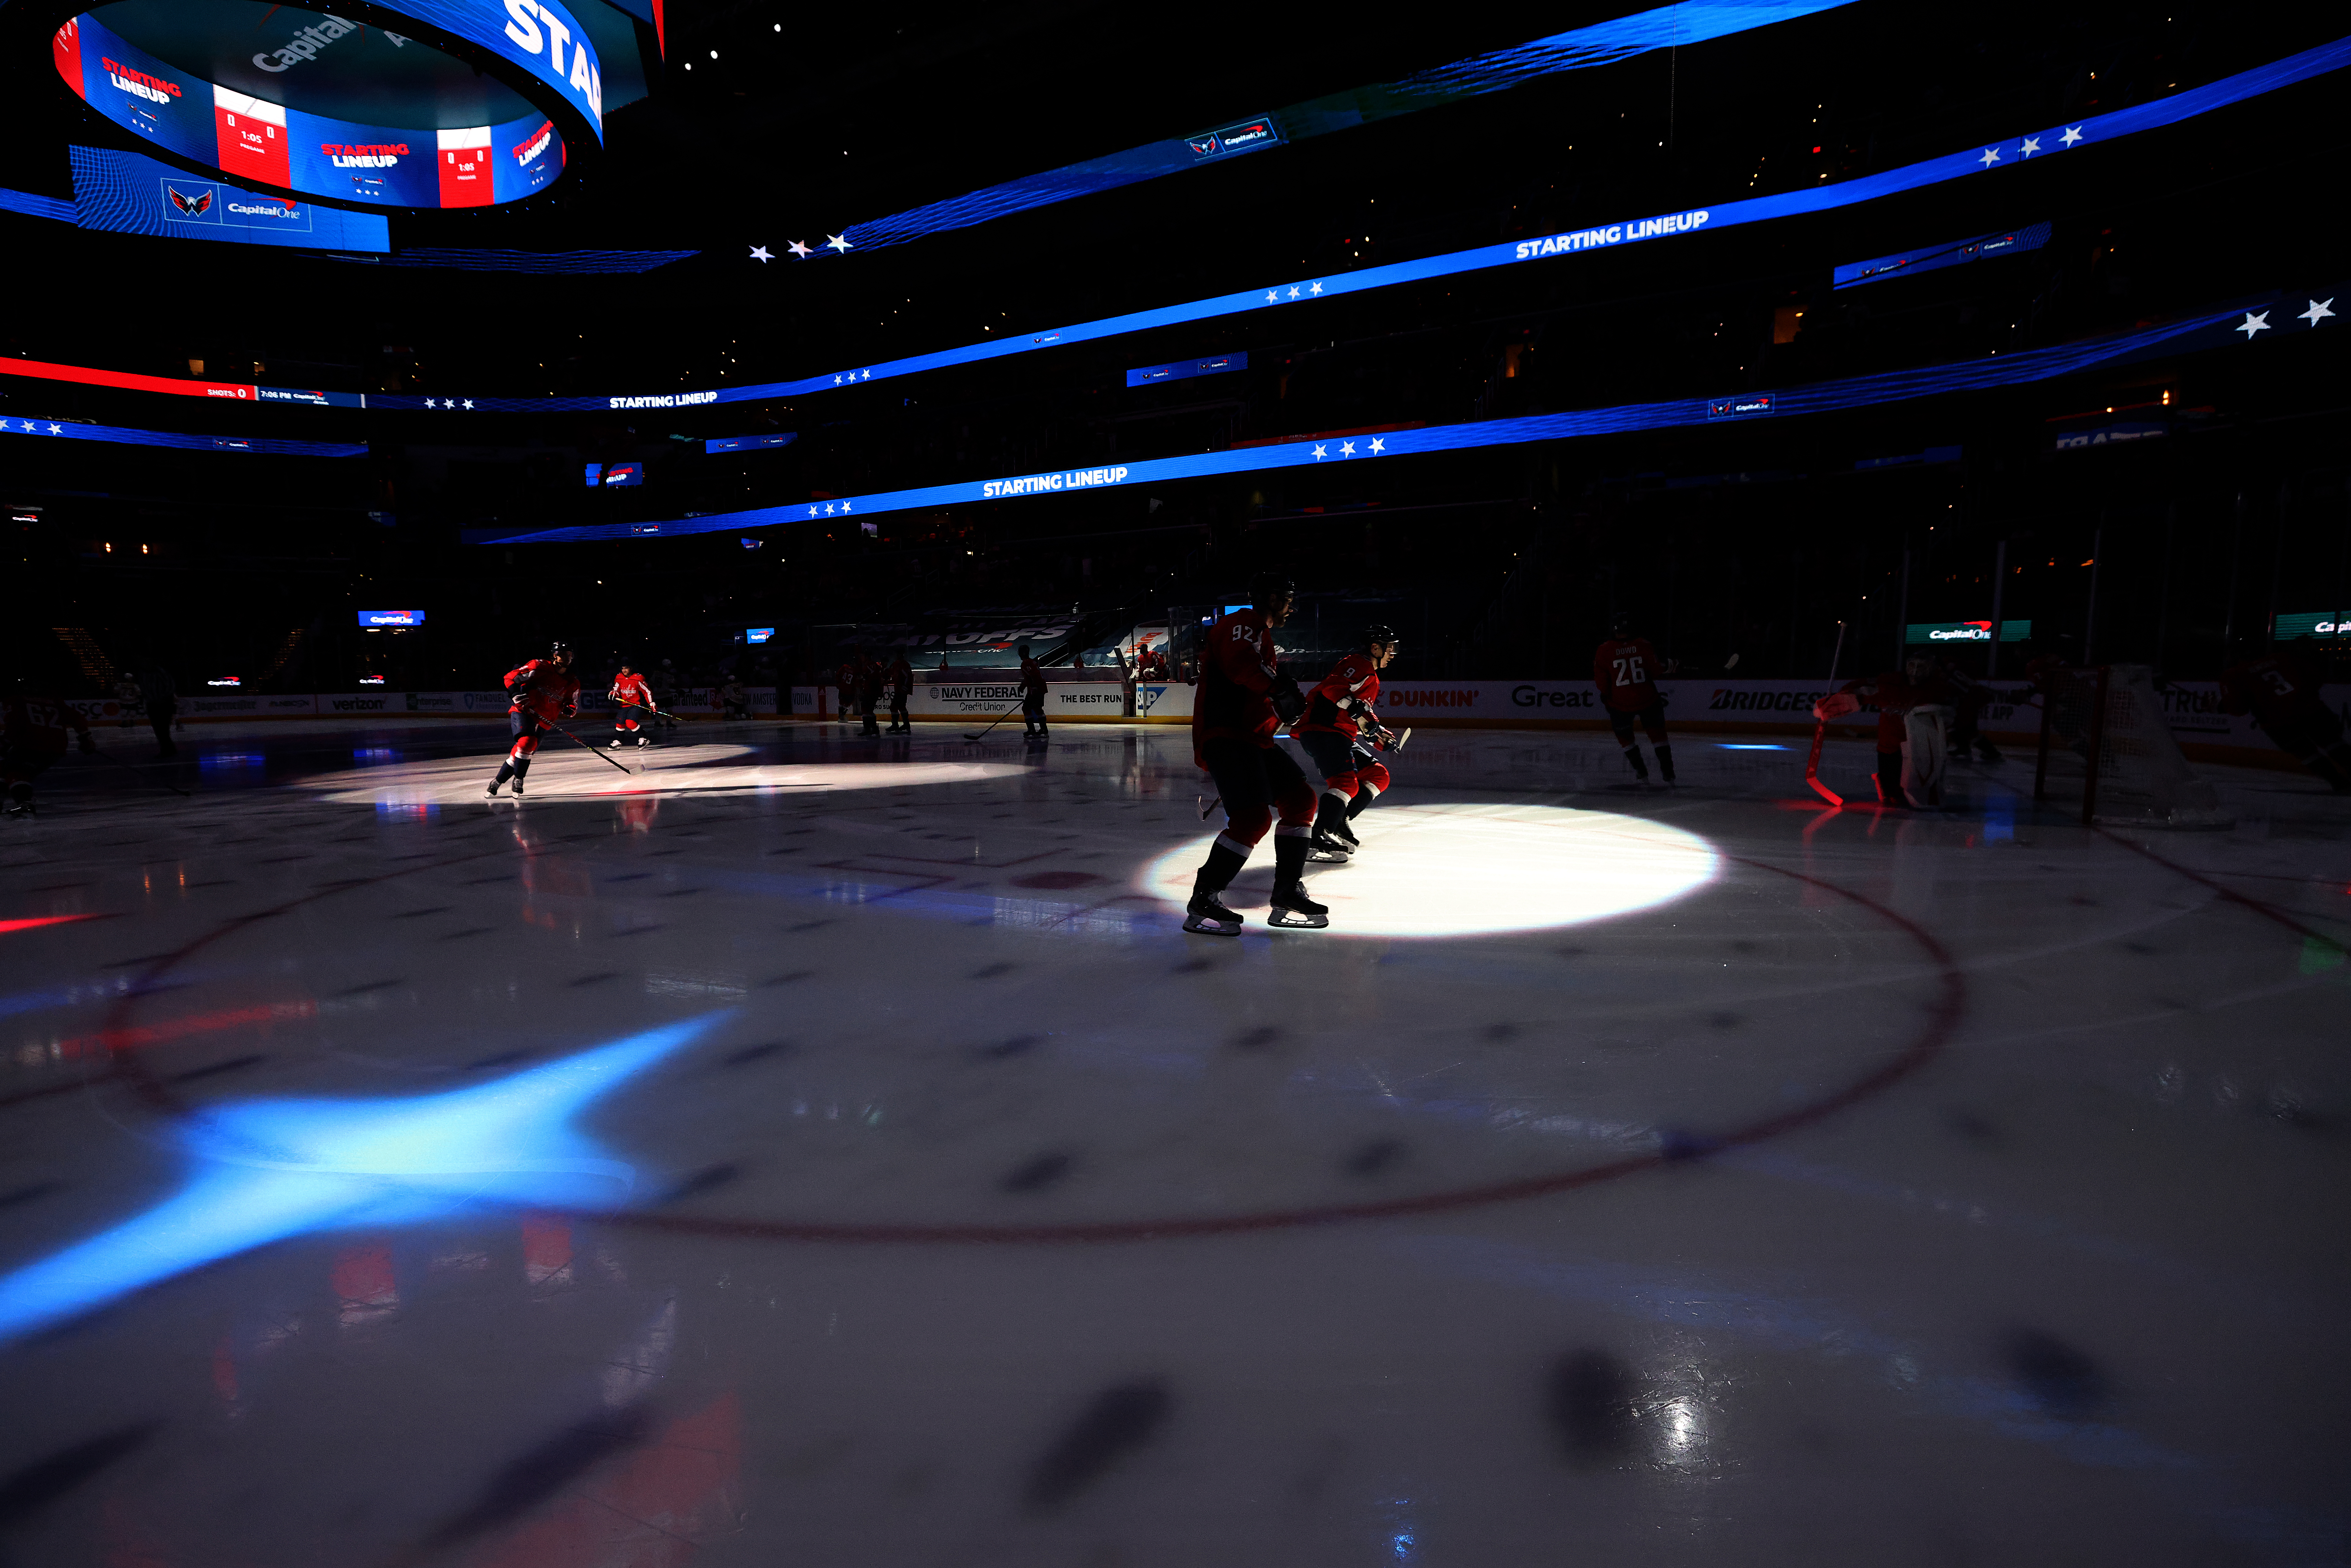 The Washington Capitals warm up before Game Five of the 2021 Stanley Cup Playoffs against the Boston Bruins at Capital One Arena on May 23, 2021 in Washington, DC.